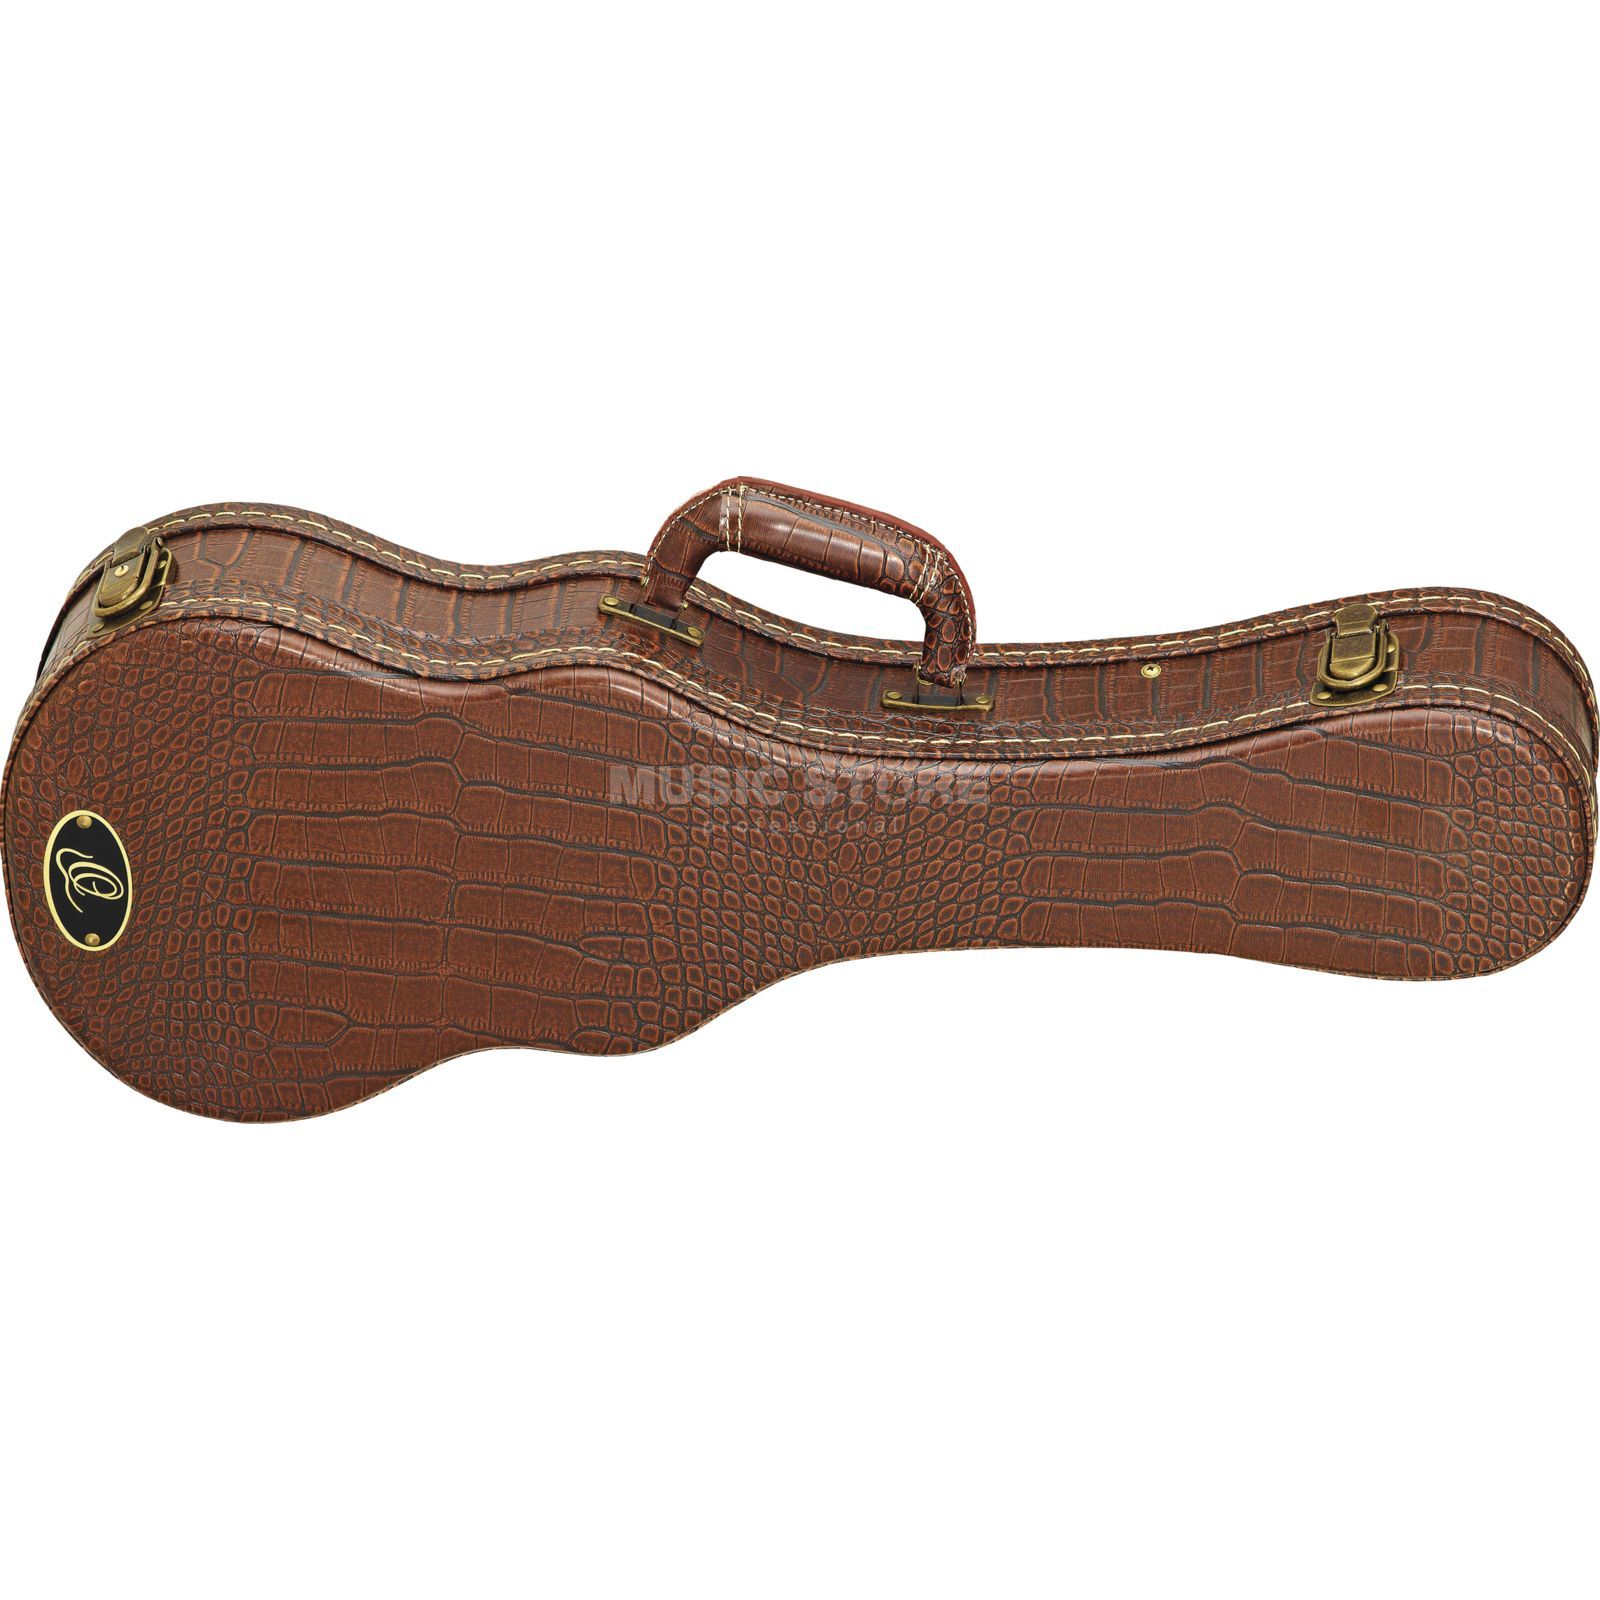 Ortega OUC-CC Ukulele Case Concert Brown Croco Finish Produktbild